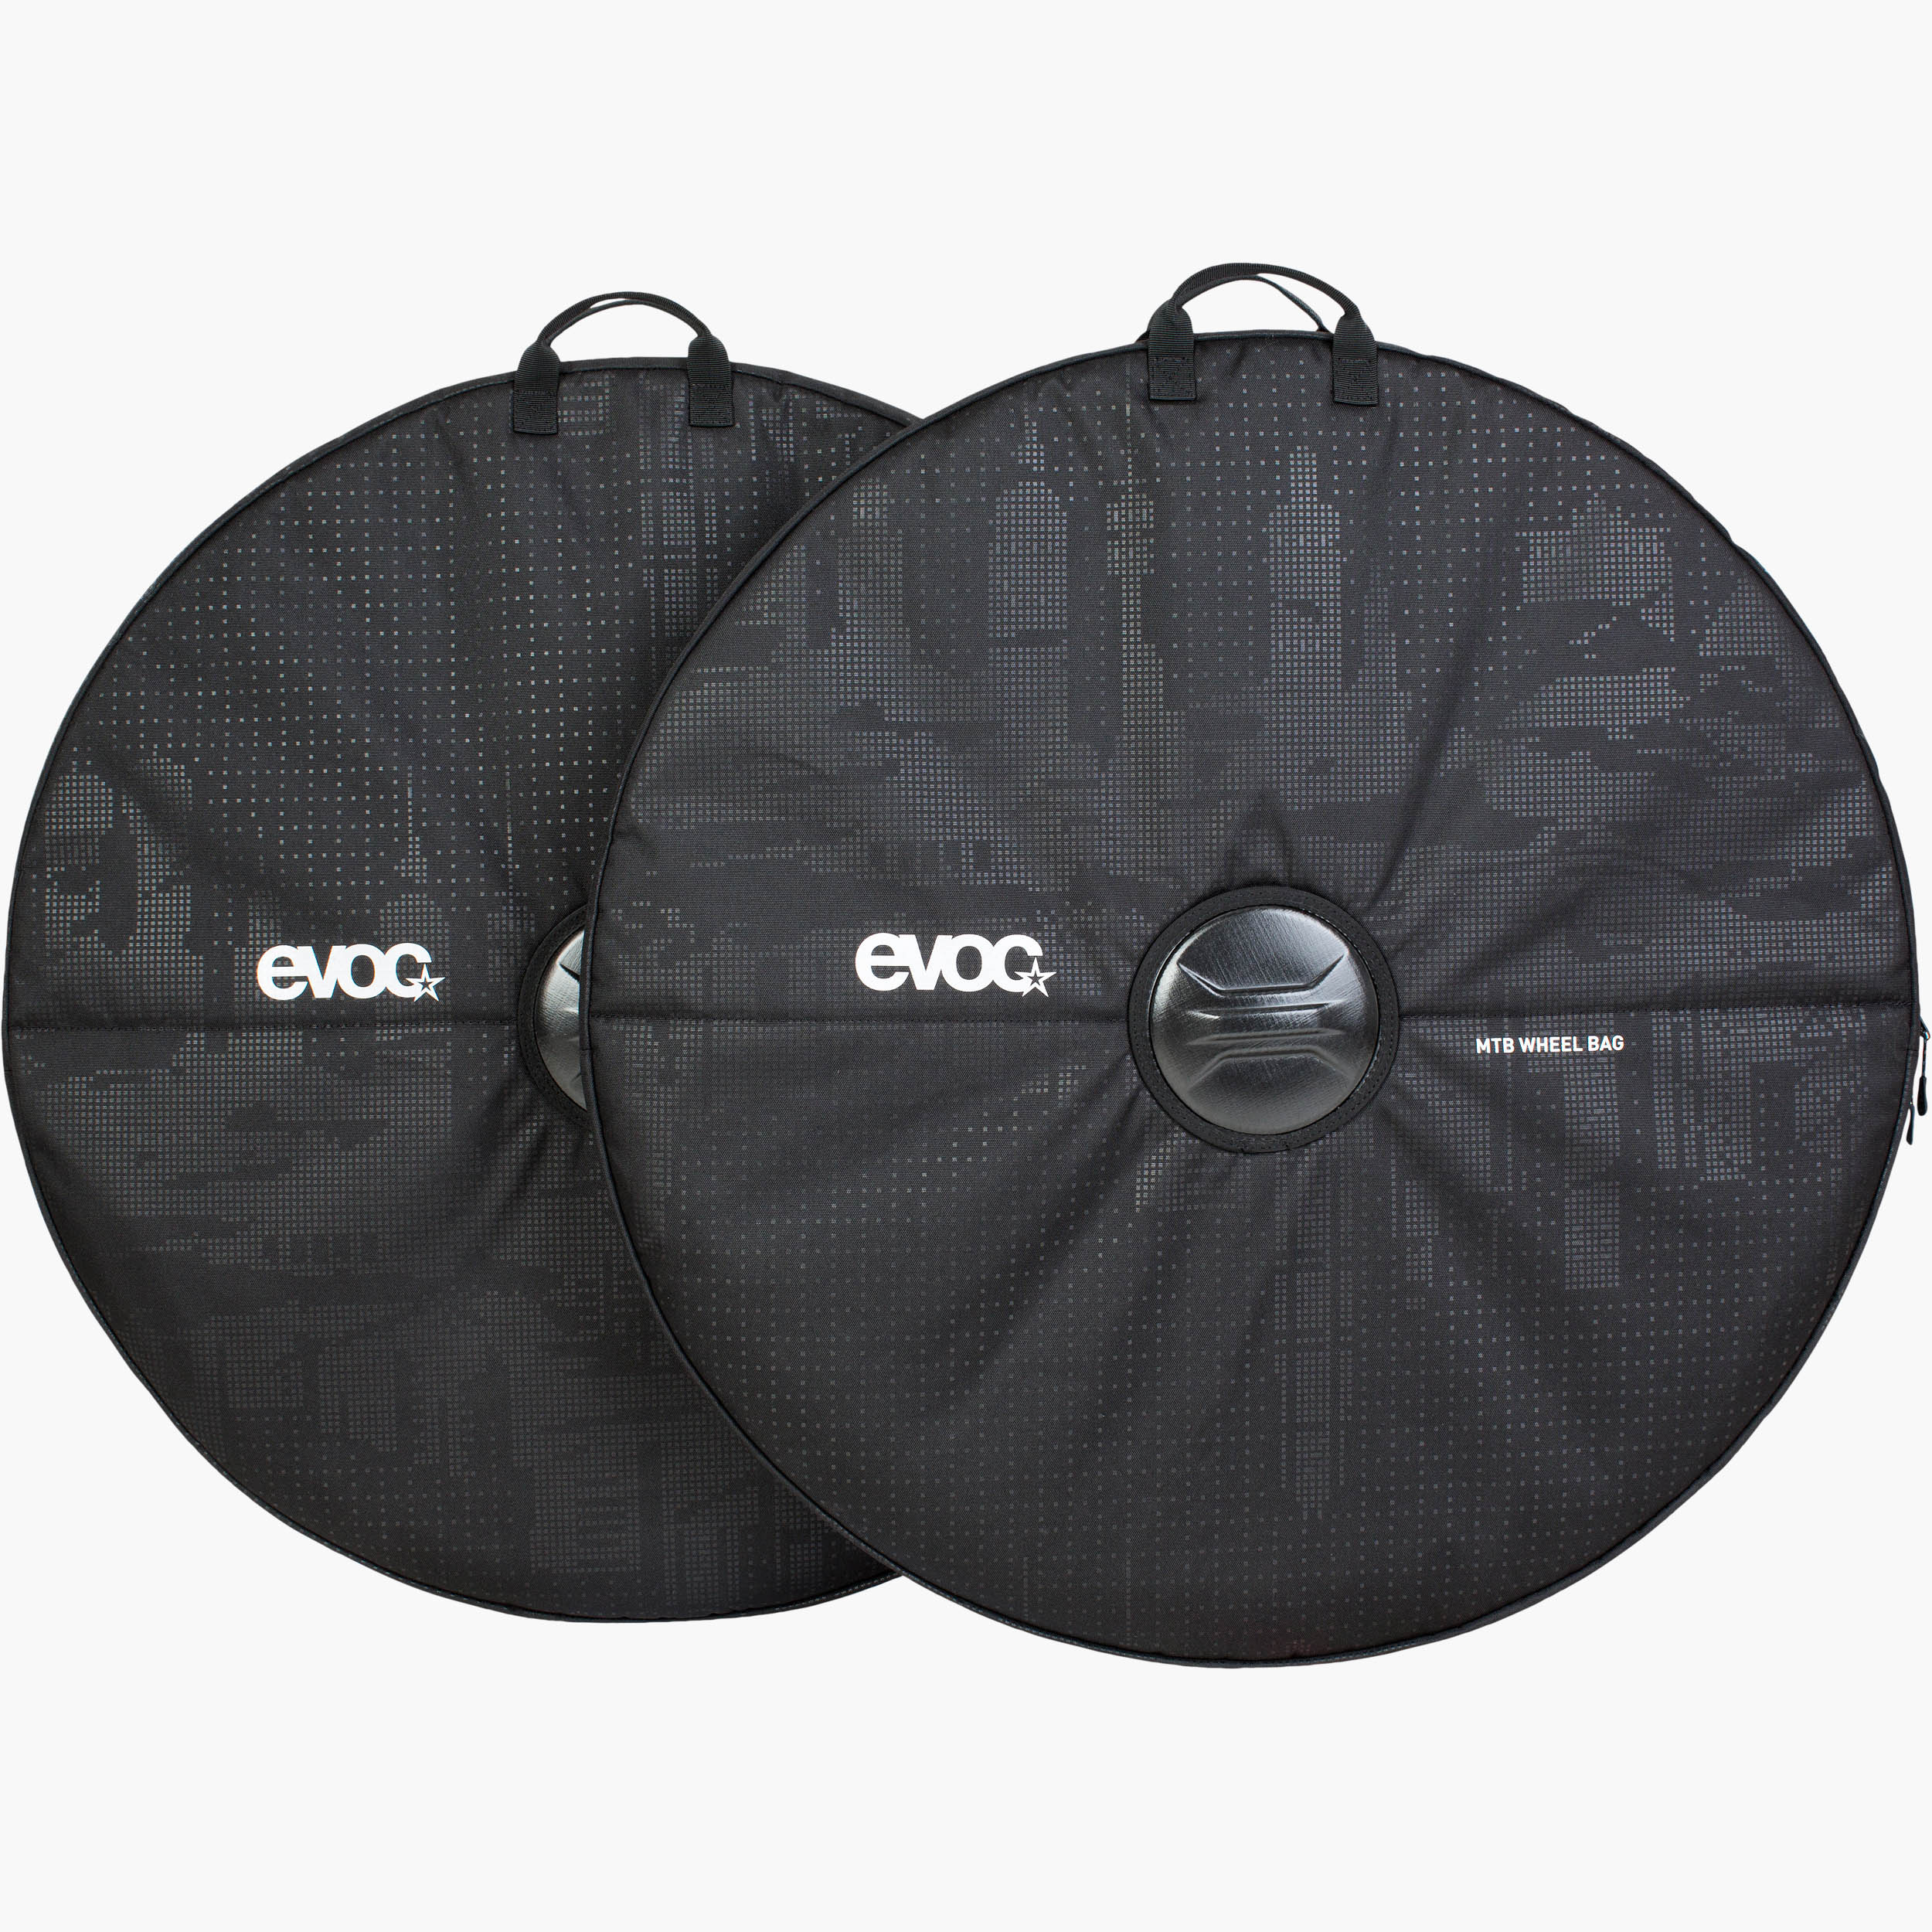 MTB WHEEL BAG (2 PCs set)